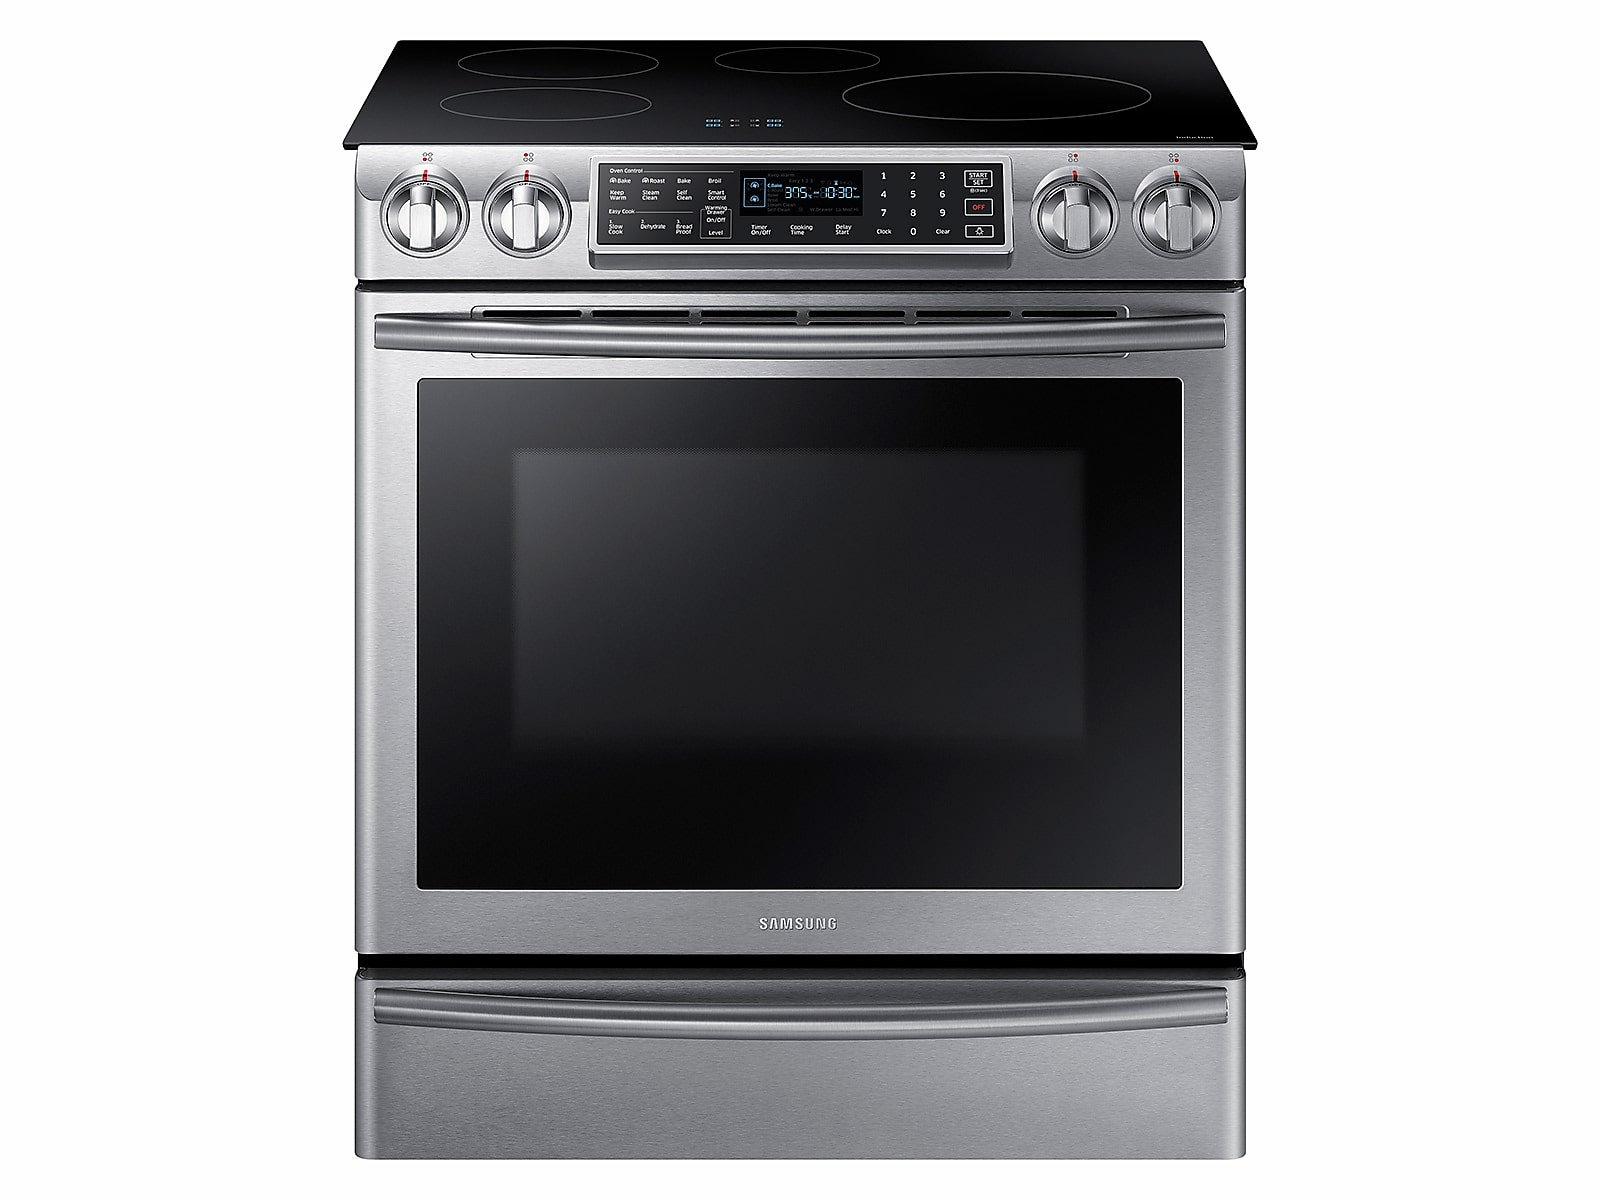 Samsung 5.8 cu ft. Smart Slide-induction Range with Virtual Flame™ in Stainless Steel(NE58K9560WS/AA)